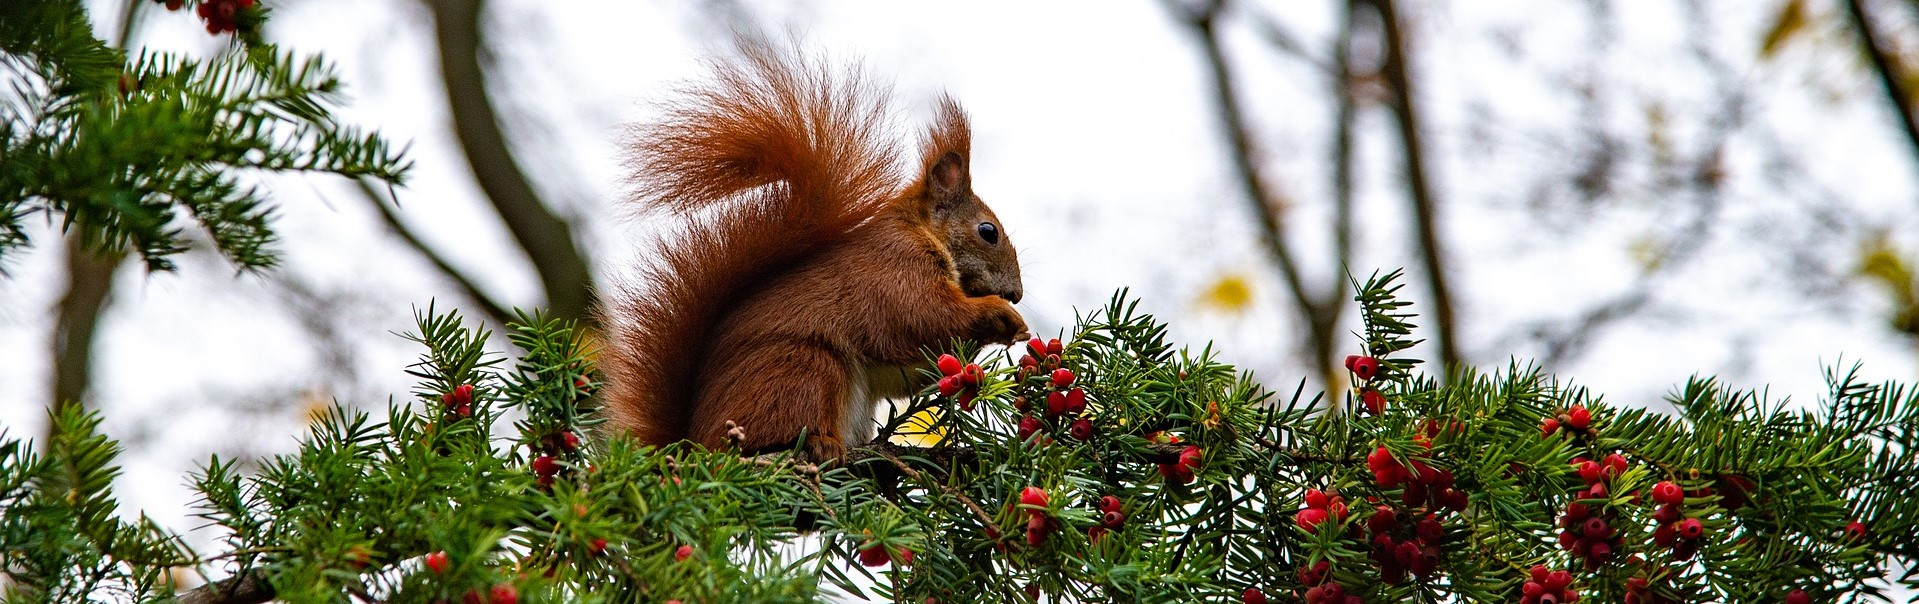 Image of red squirrel on tree branch